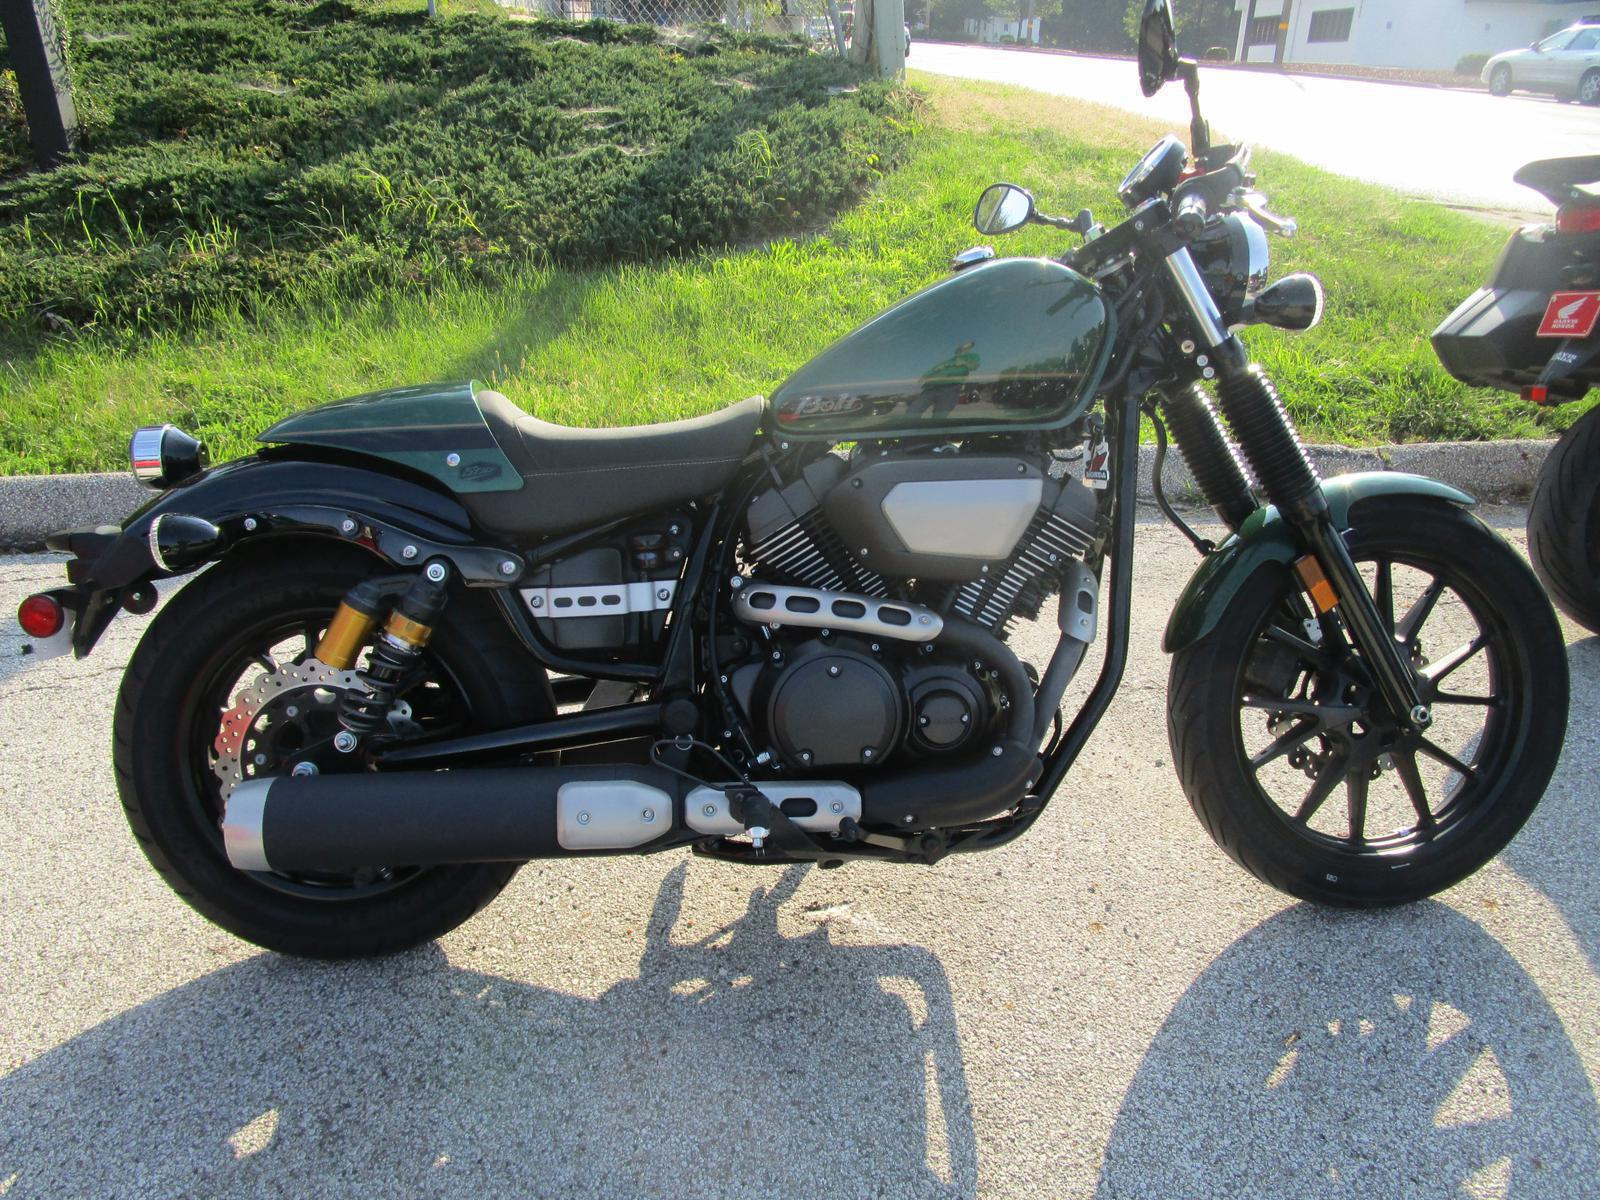 2015 Yamaha Bolt C-Spec for sale in Des Moines, IA | Garvis Honda ...